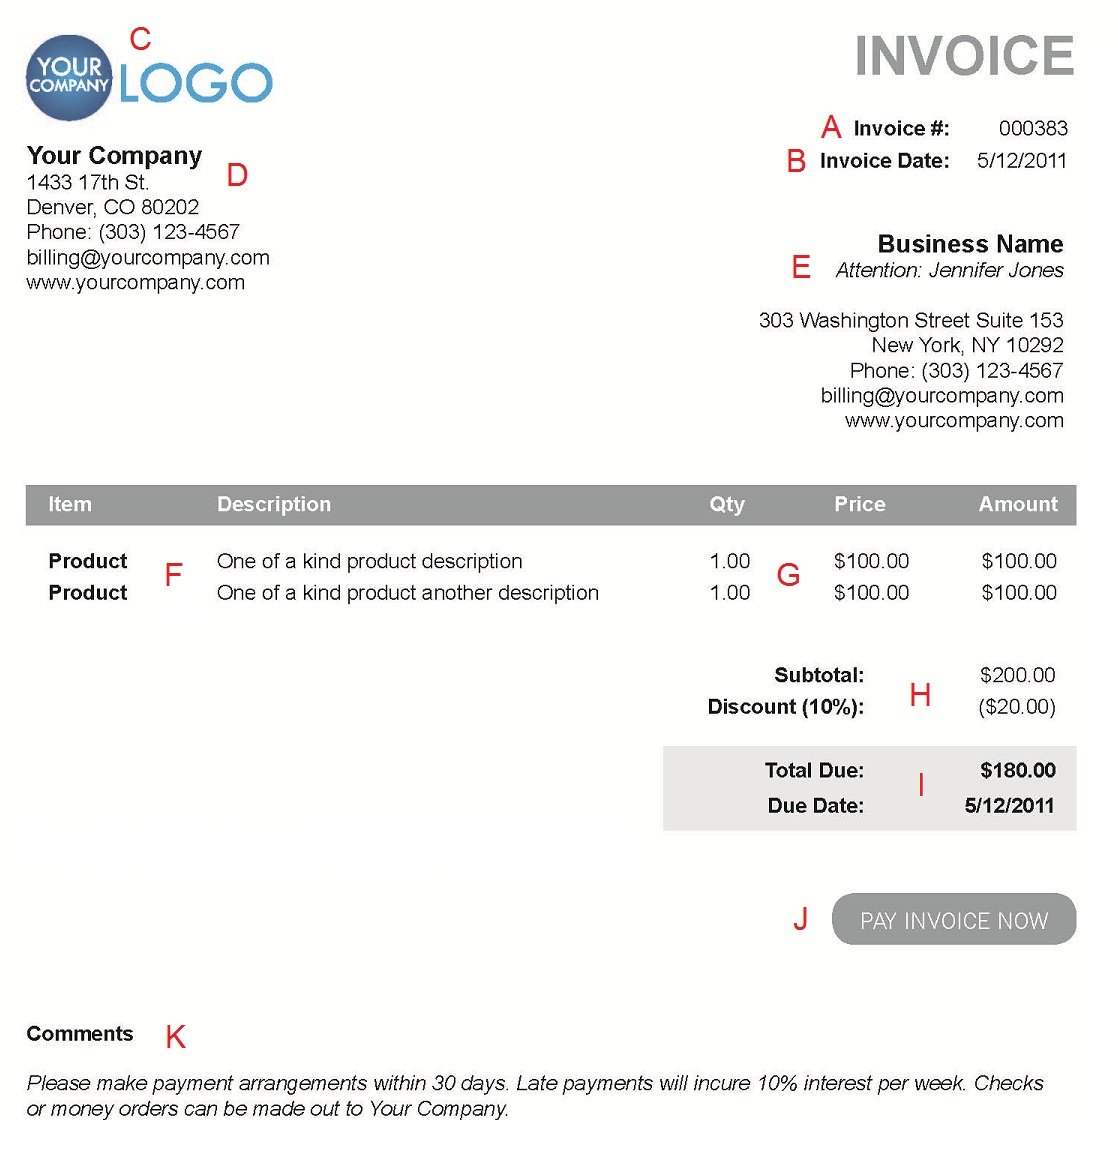 Picnictoimpeachus  Fascinating The  Different Sections Of An Electronic Payment Invoice With Gorgeous A  With Amusing Advance Payment Invoice Sample Also Invoice Factoring Explained In Addition Sample Medical Invoice And Free Australian Invoice Template As Well As Basic Invoice Format Additionally Invoice Discount Facility From Paysimplecom With Picnictoimpeachus  Gorgeous The  Different Sections Of An Electronic Payment Invoice With Amusing A  And Fascinating Advance Payment Invoice Sample Also Invoice Factoring Explained In Addition Sample Medical Invoice From Paysimplecom